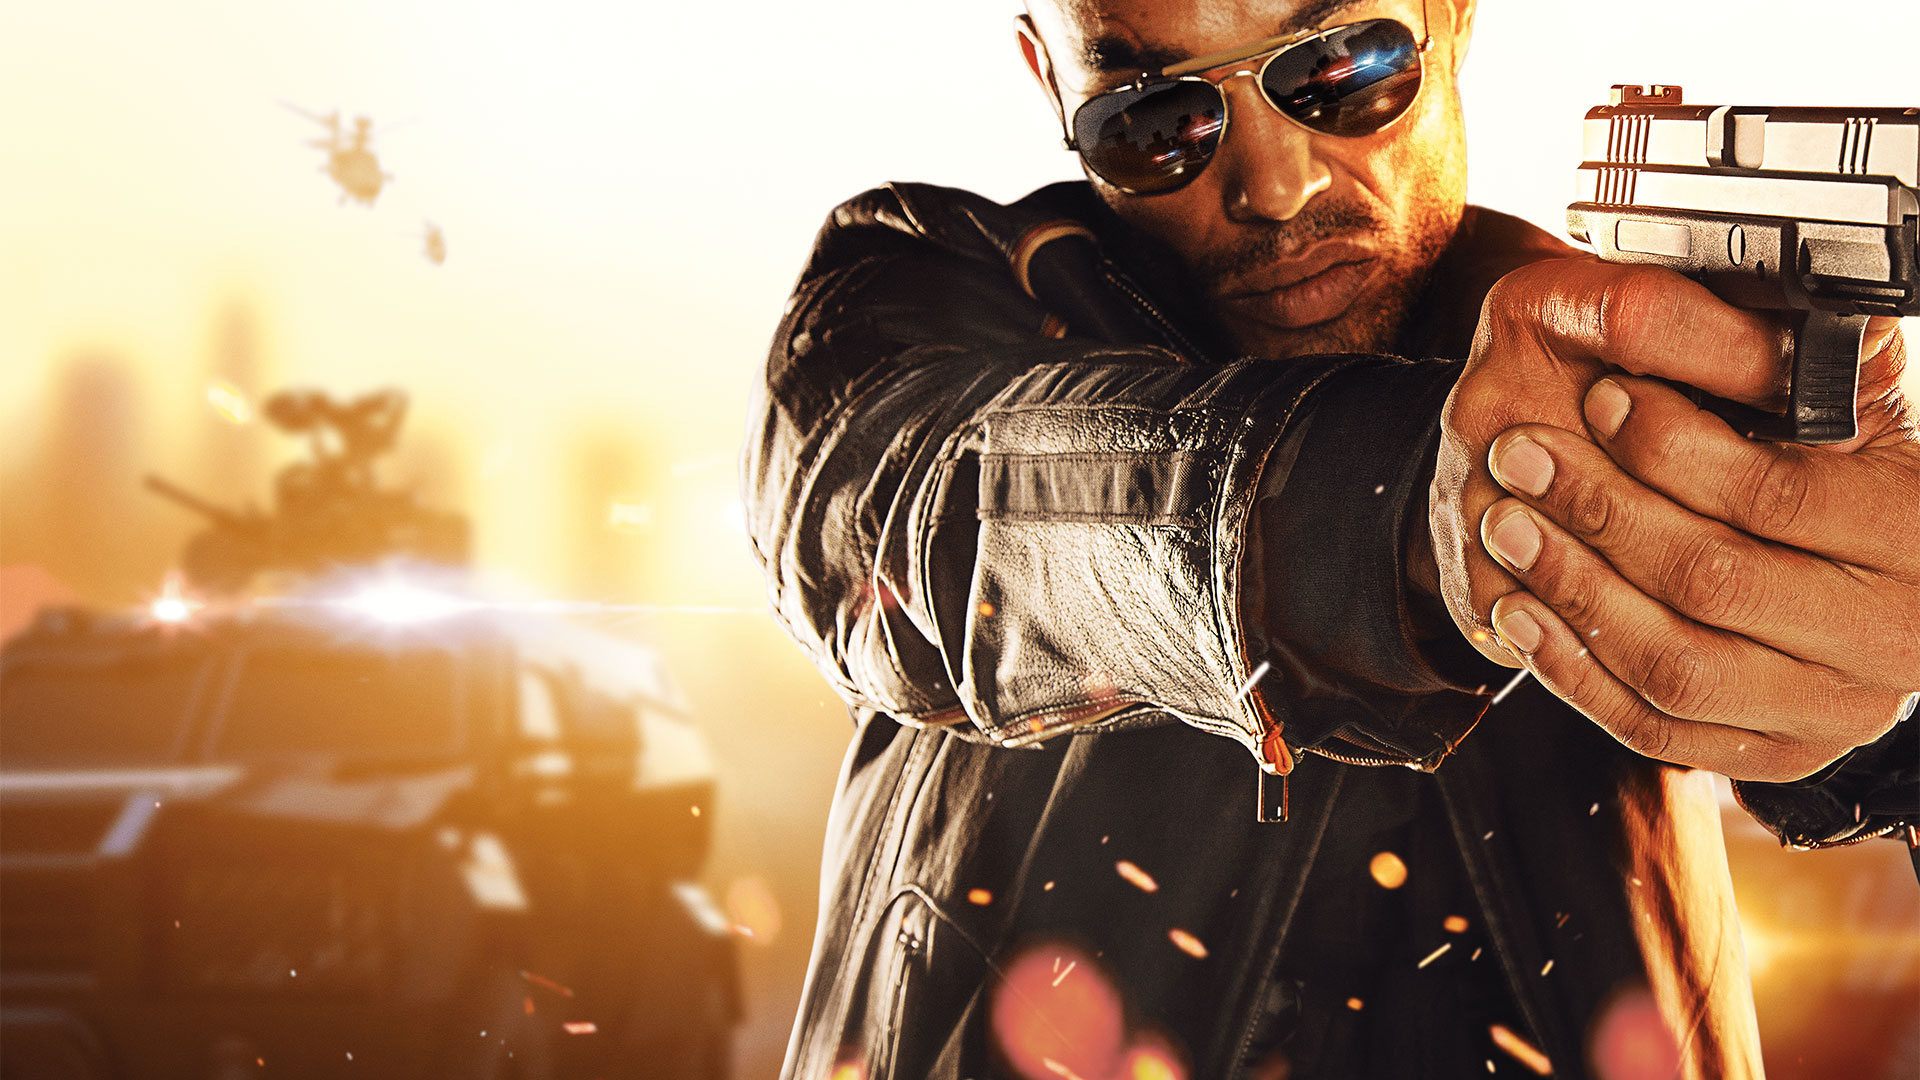 Battlefield Hardline guy